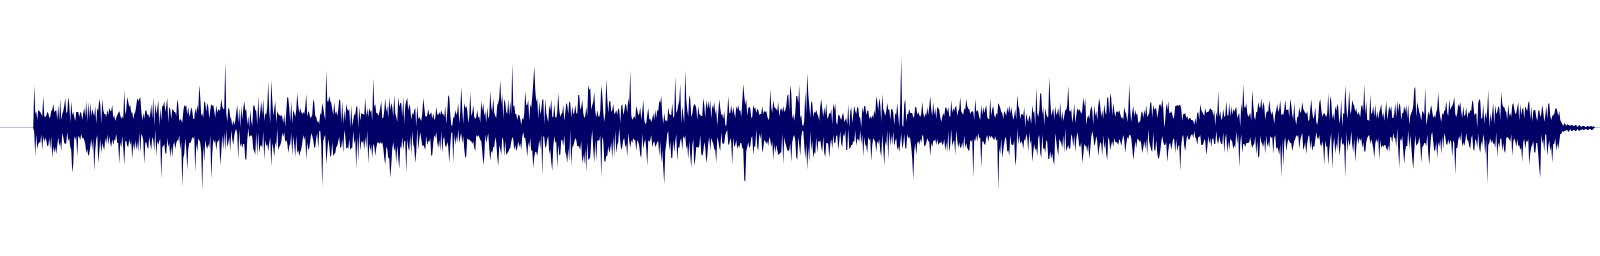 waveform of track #100700